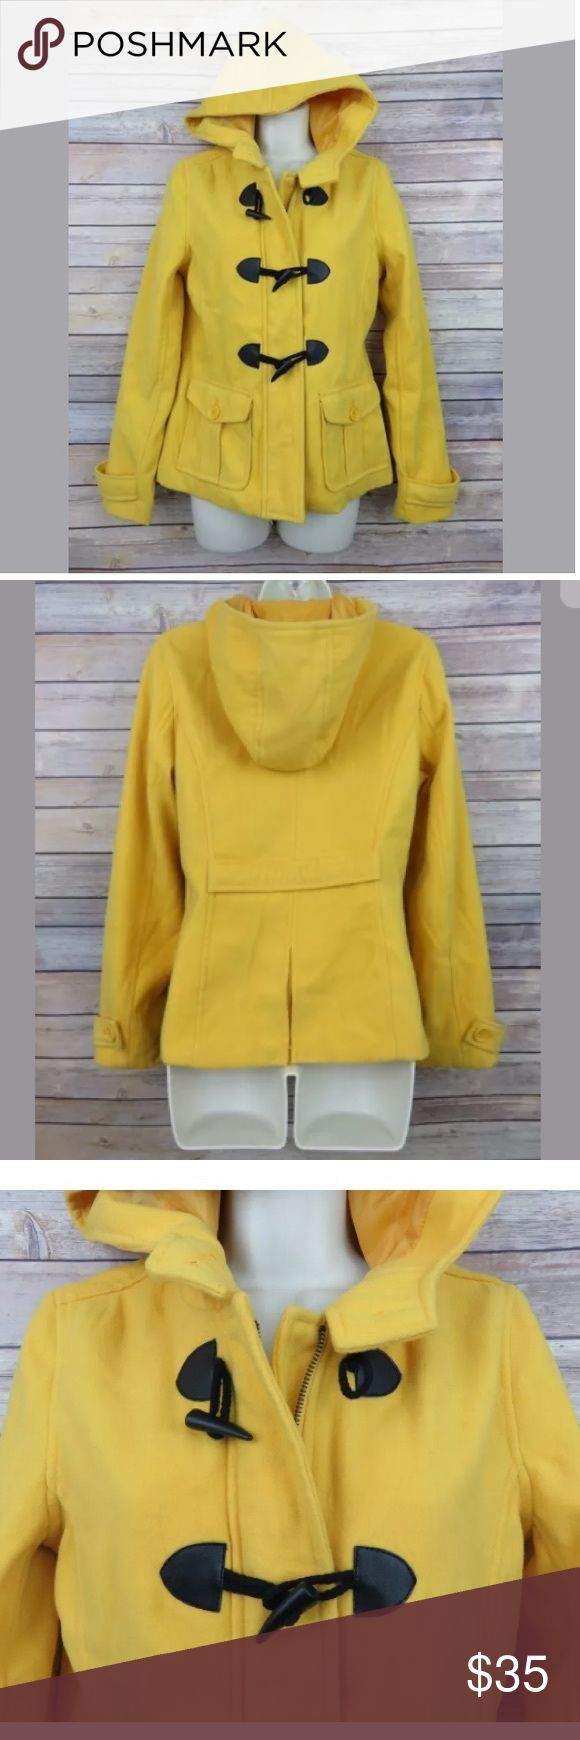 """Empyre yellow hooded toggle button jacket Empyre yellow peacoat toggle button coat - Womens Medium  New with tags - but there are a couple of light spots near the collar (see photo)  100% polyester - feels like a felt material  Zipper and toggle button front   Armpit to Armpit: 19"""" Shoulder to hem: 22"""" Empyre Jackets & Coats"""